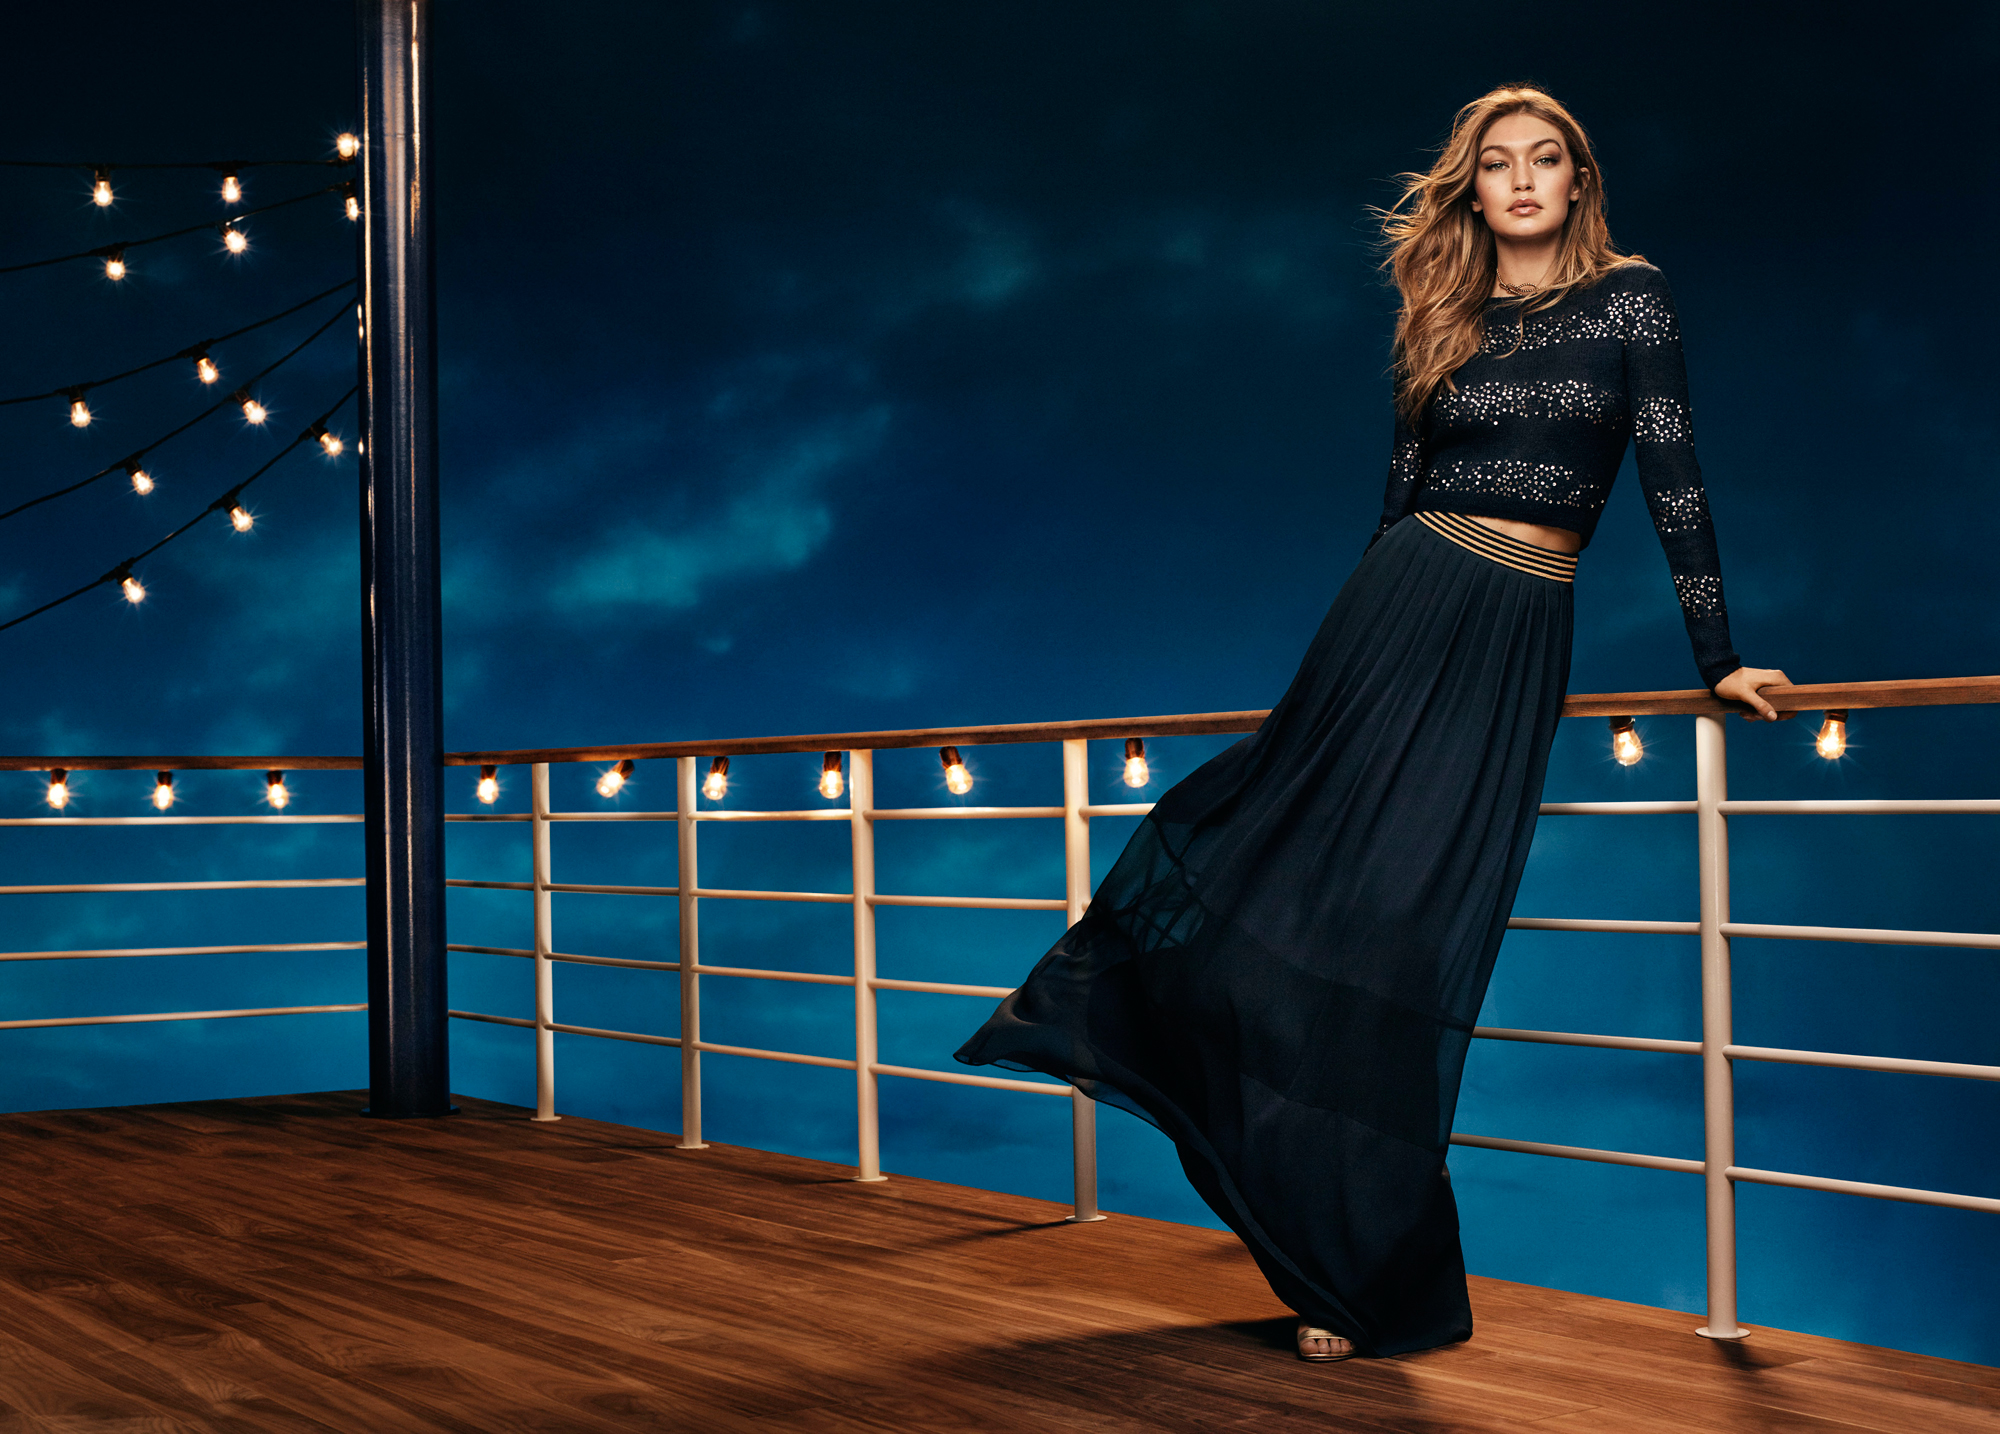 All Aboard Tommy Hilfiger's 2016 Holiday Collection with Gigi Hadid